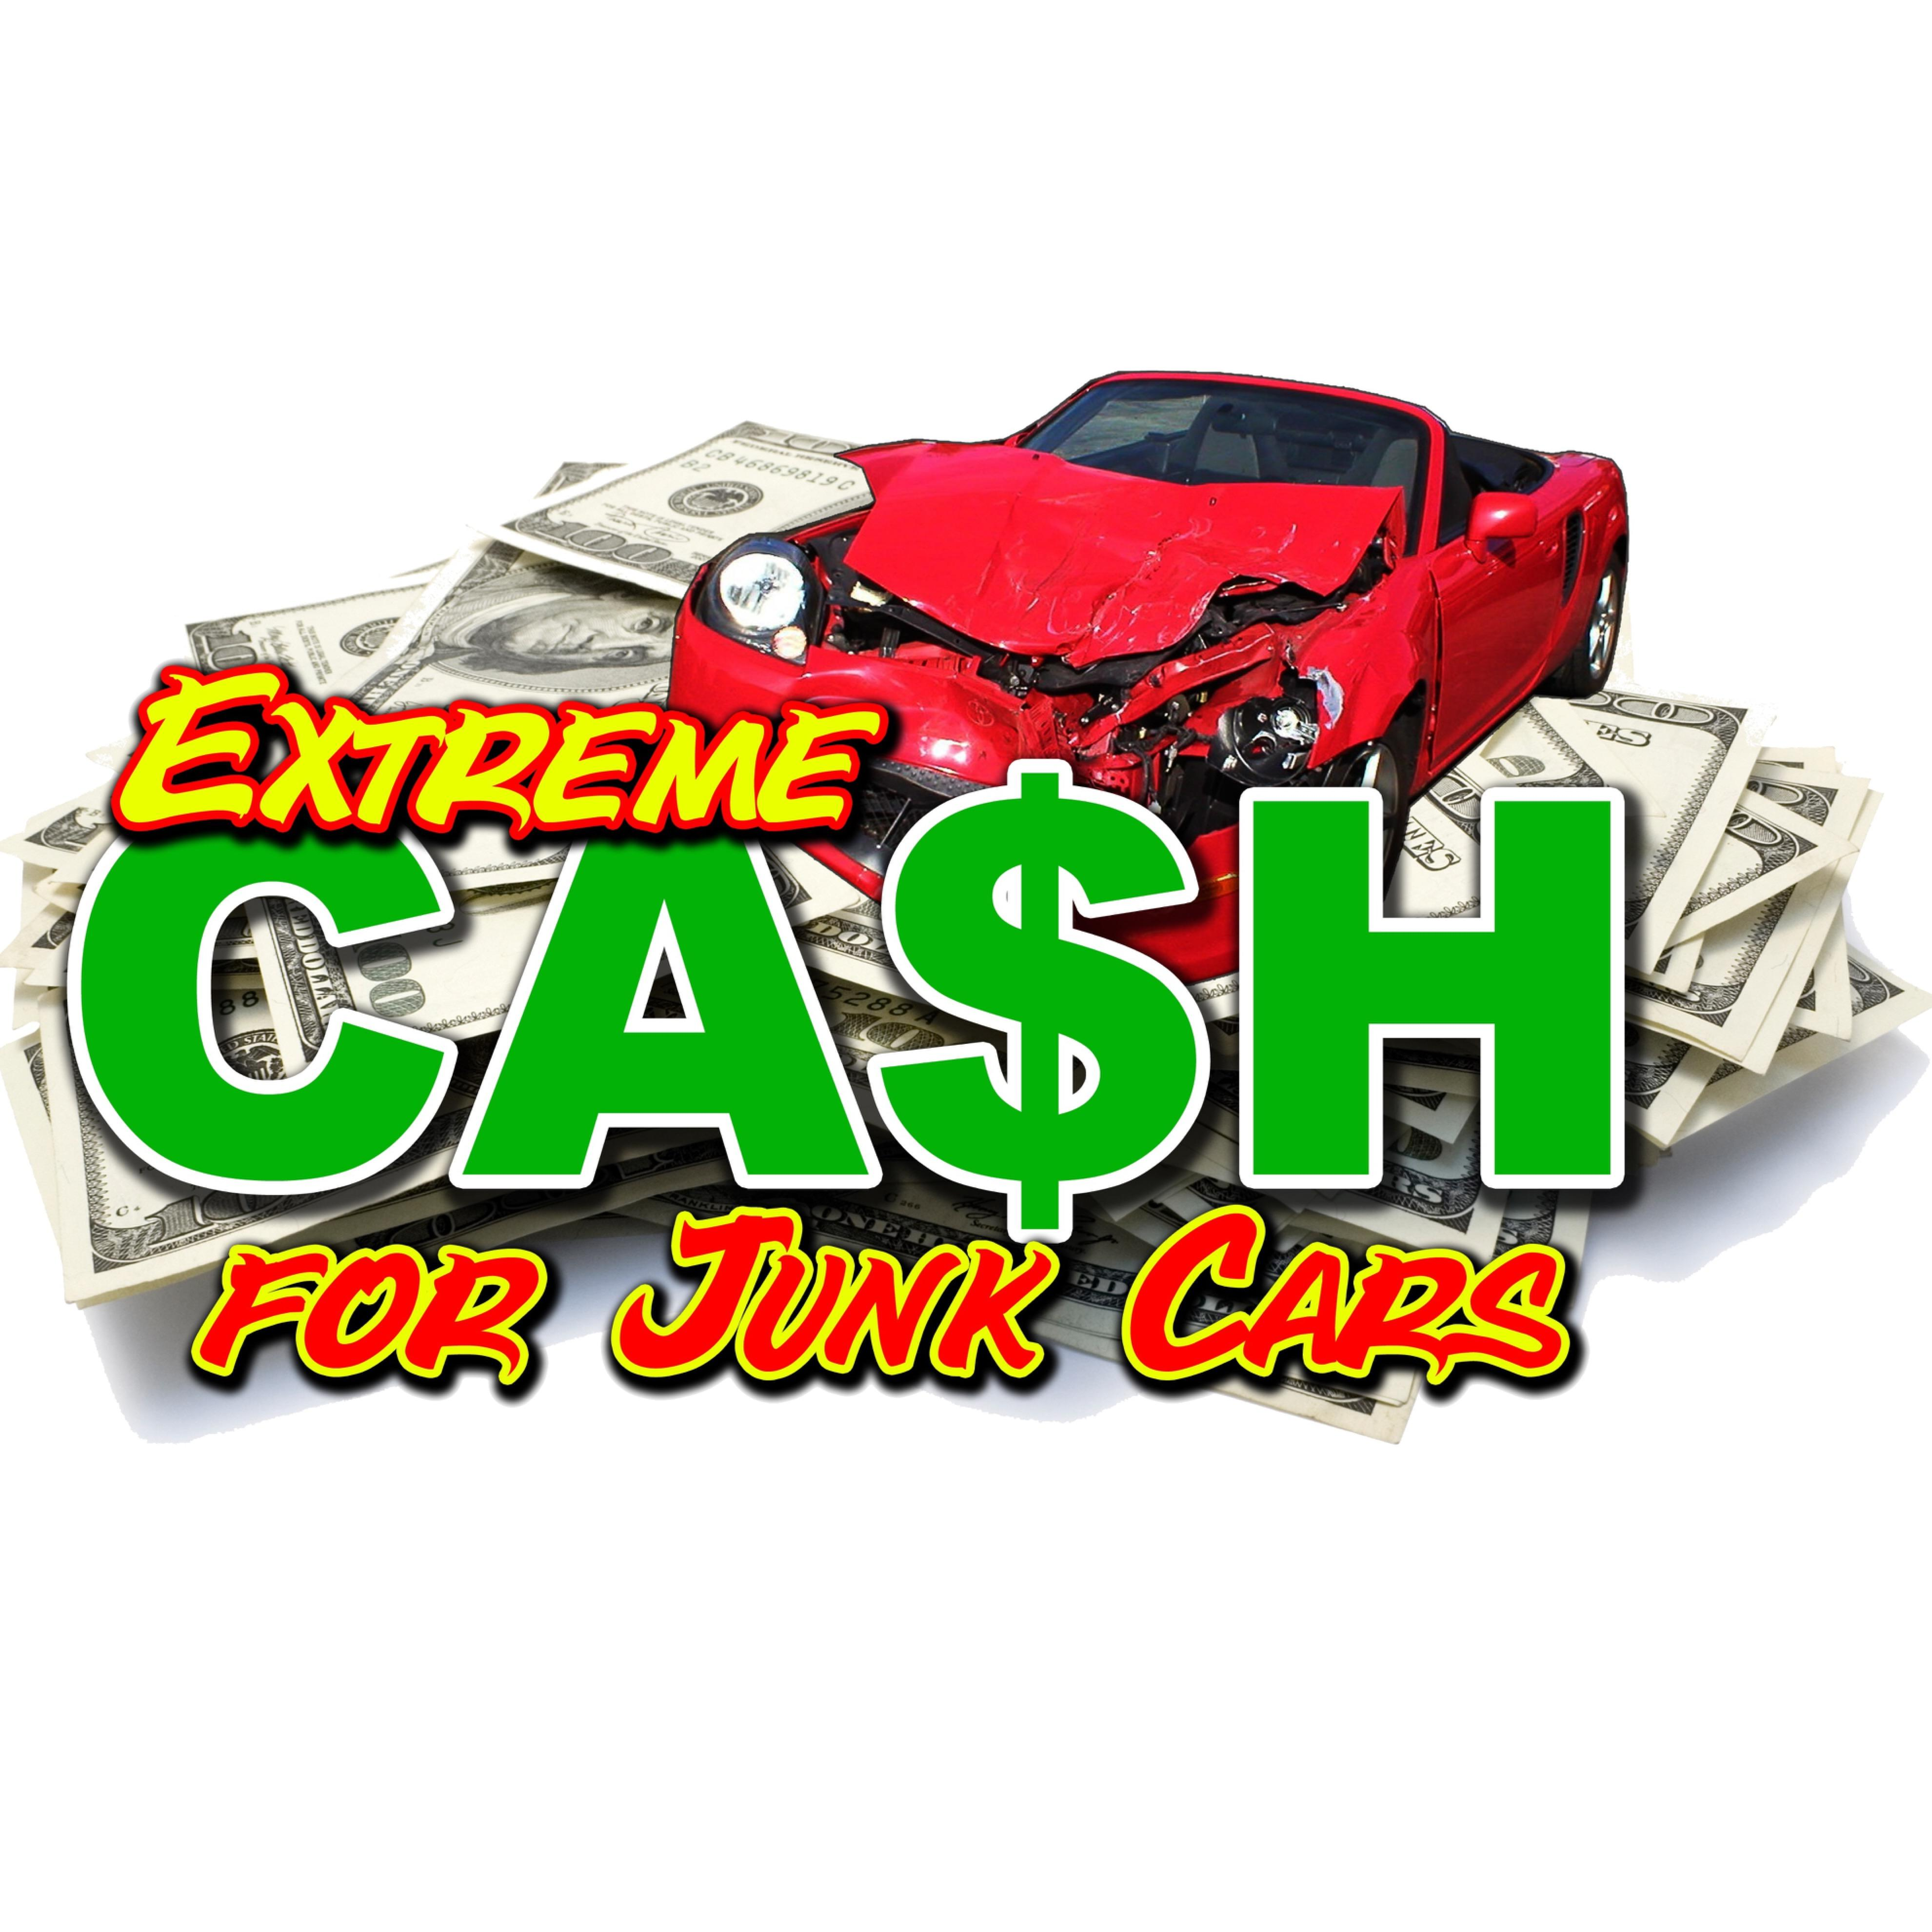 Extreme Cash for Junk Cars/ Junk Car For Cash Removal